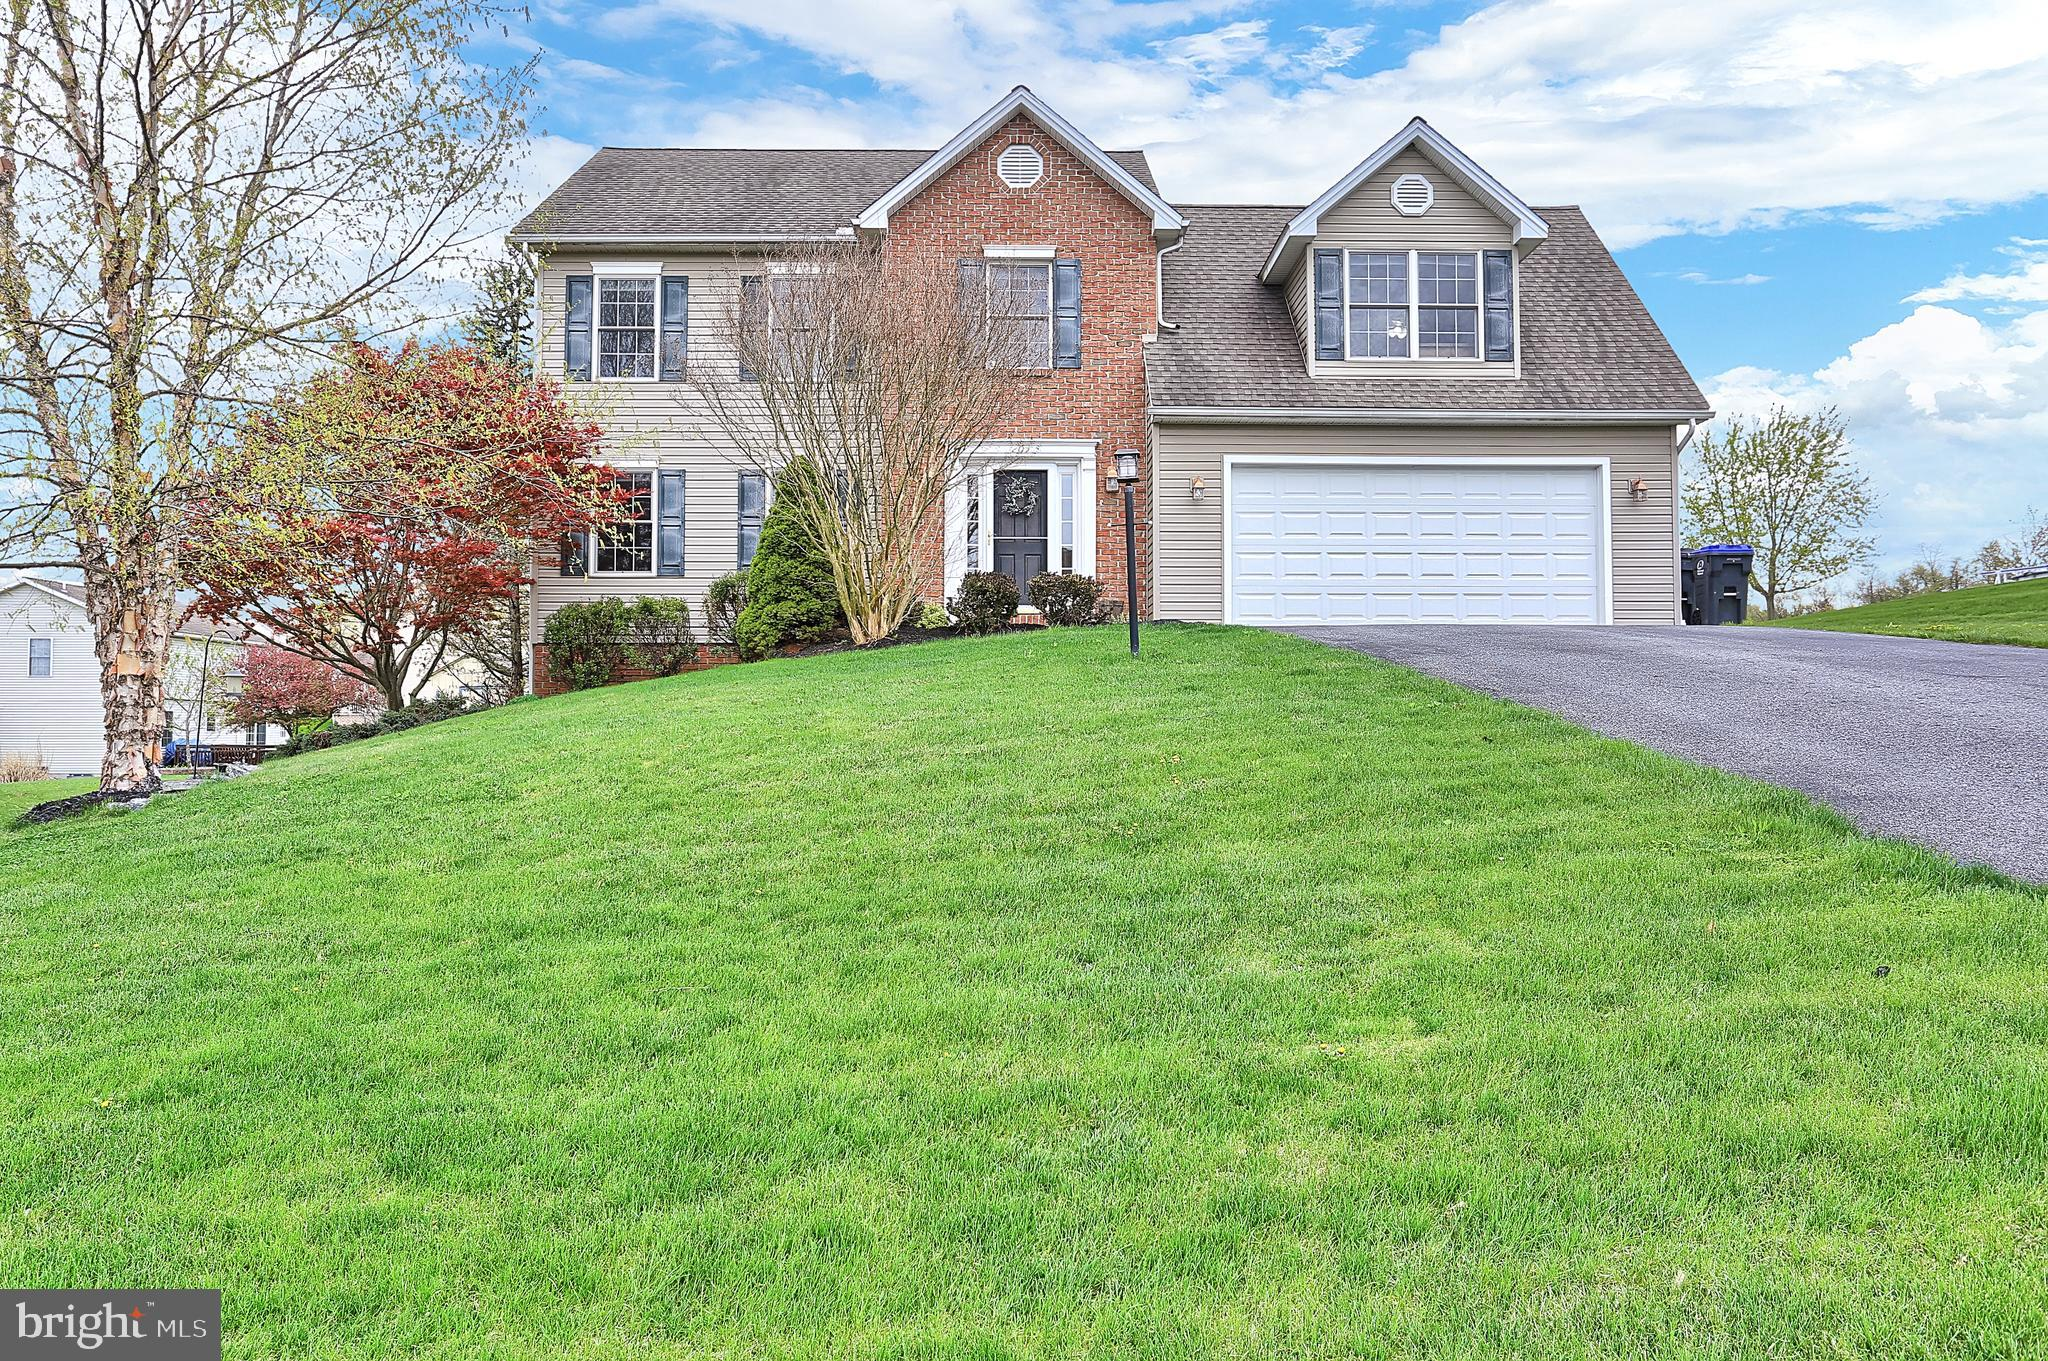 205 SUNSET DRIVE, MOUNT HOLLY SPRINGS, PA 17065